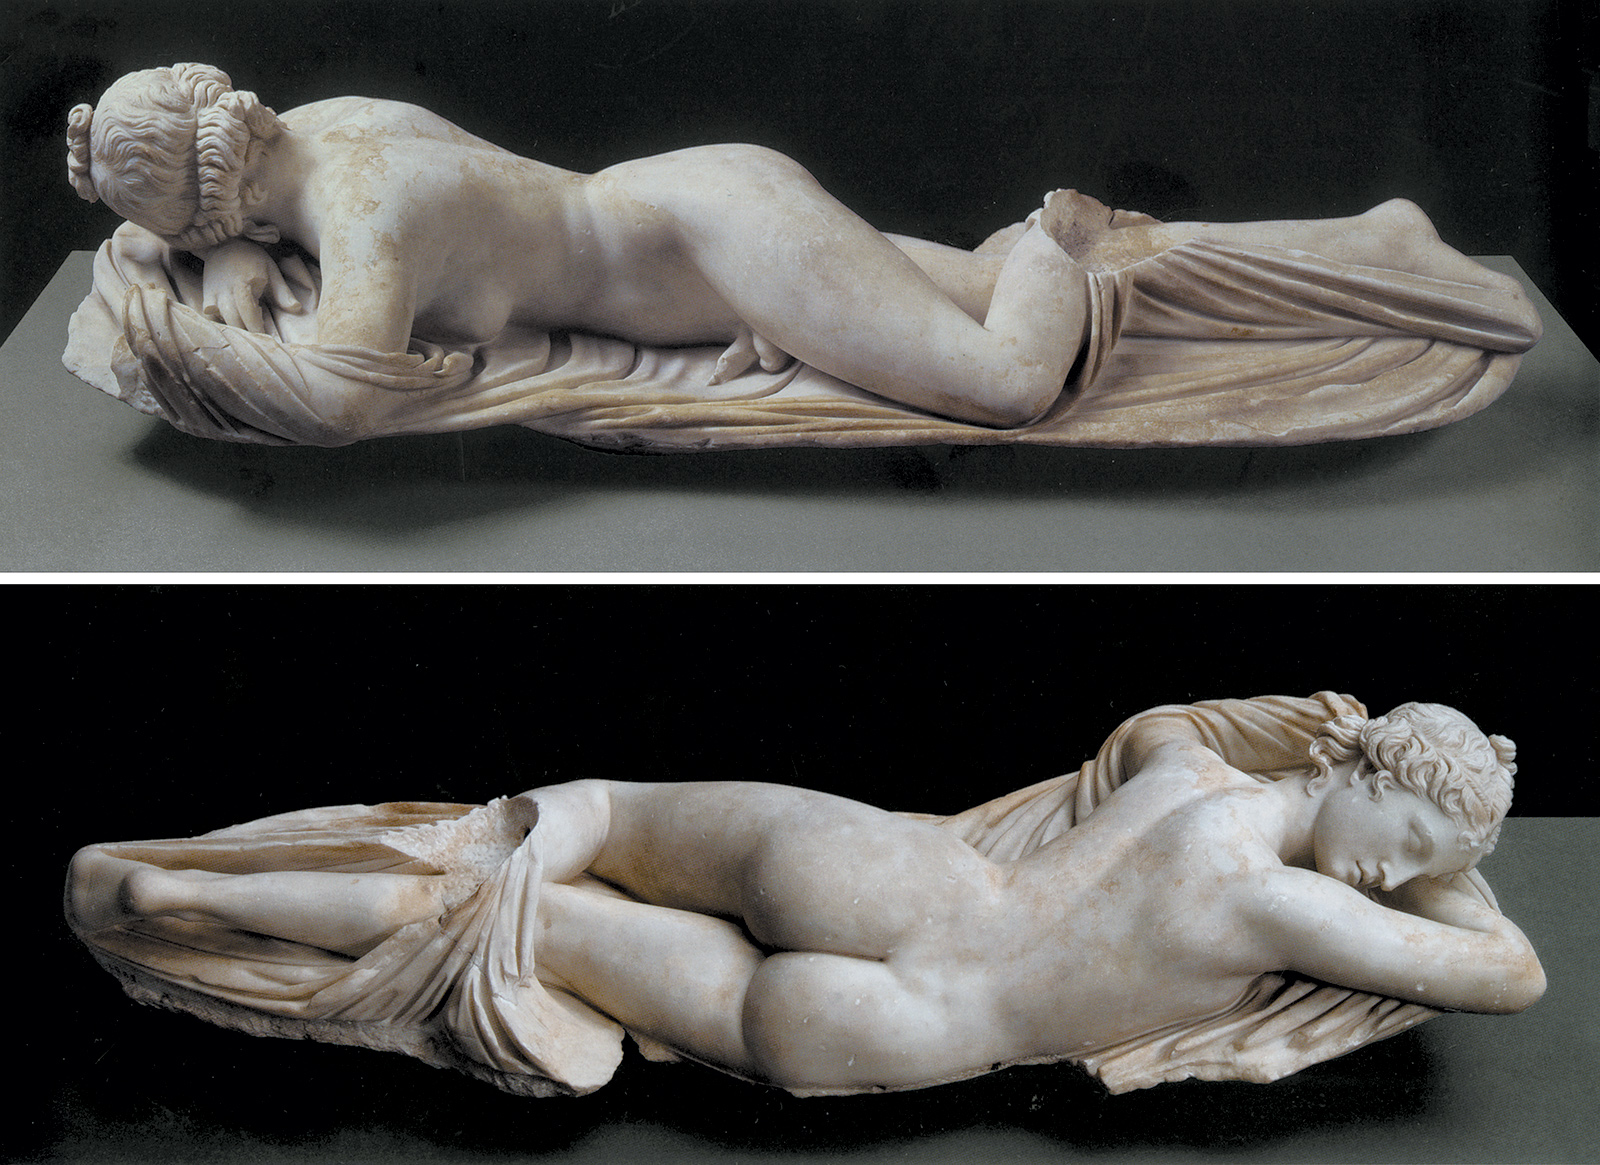 Two views of 'Sleeping Hermaphrodite'; second-century-AD Roman marble copy of a second-century-BC Greek original, on view in the Metropolitan Museum's exhibition 'Pergamon and the Hellenistic Kingdoms of the Ancient World'